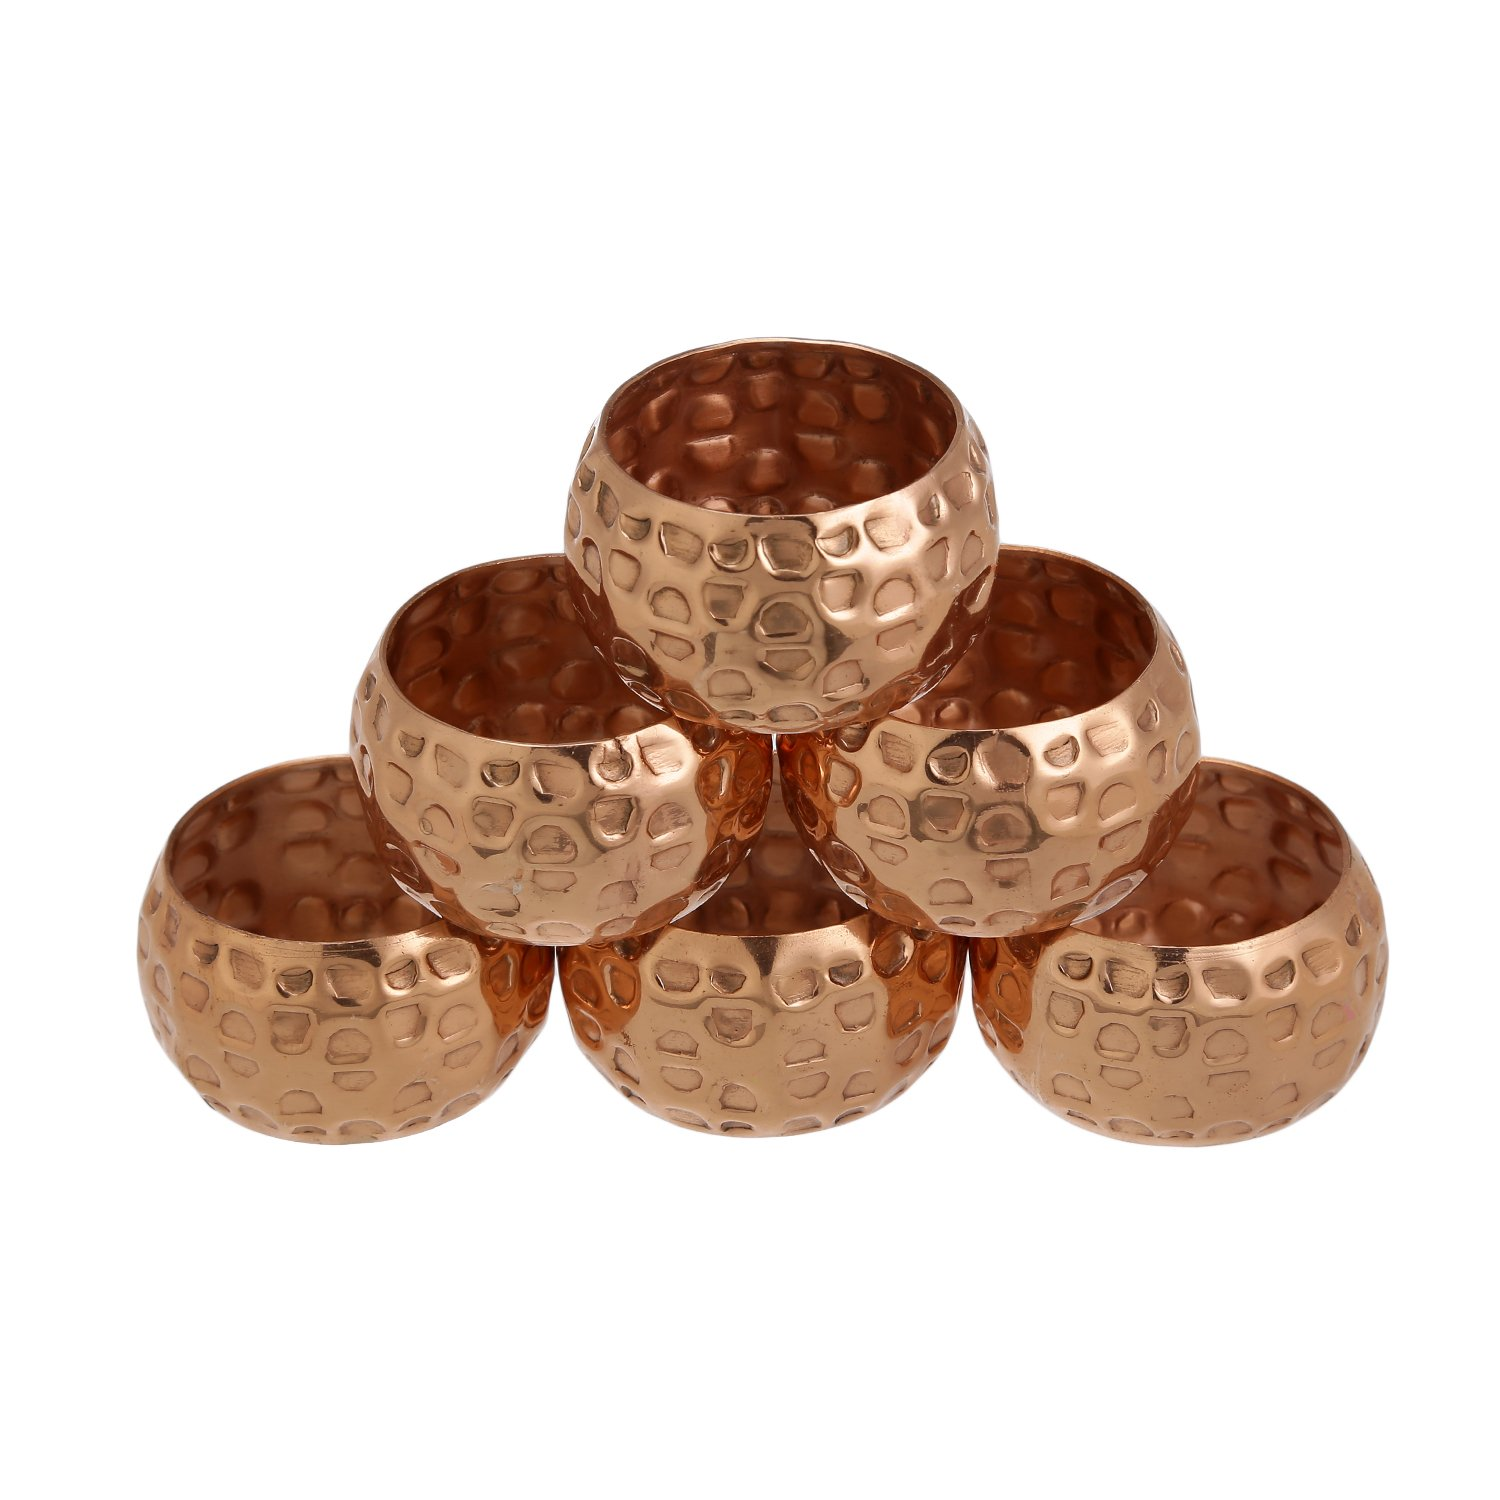 Shalinindia Copper Napkin Rings for Weddings,Dinners, Parties, or Everyday Use, Set of 6,Light Weight 40 Grams,Diameter-1.5 Inch